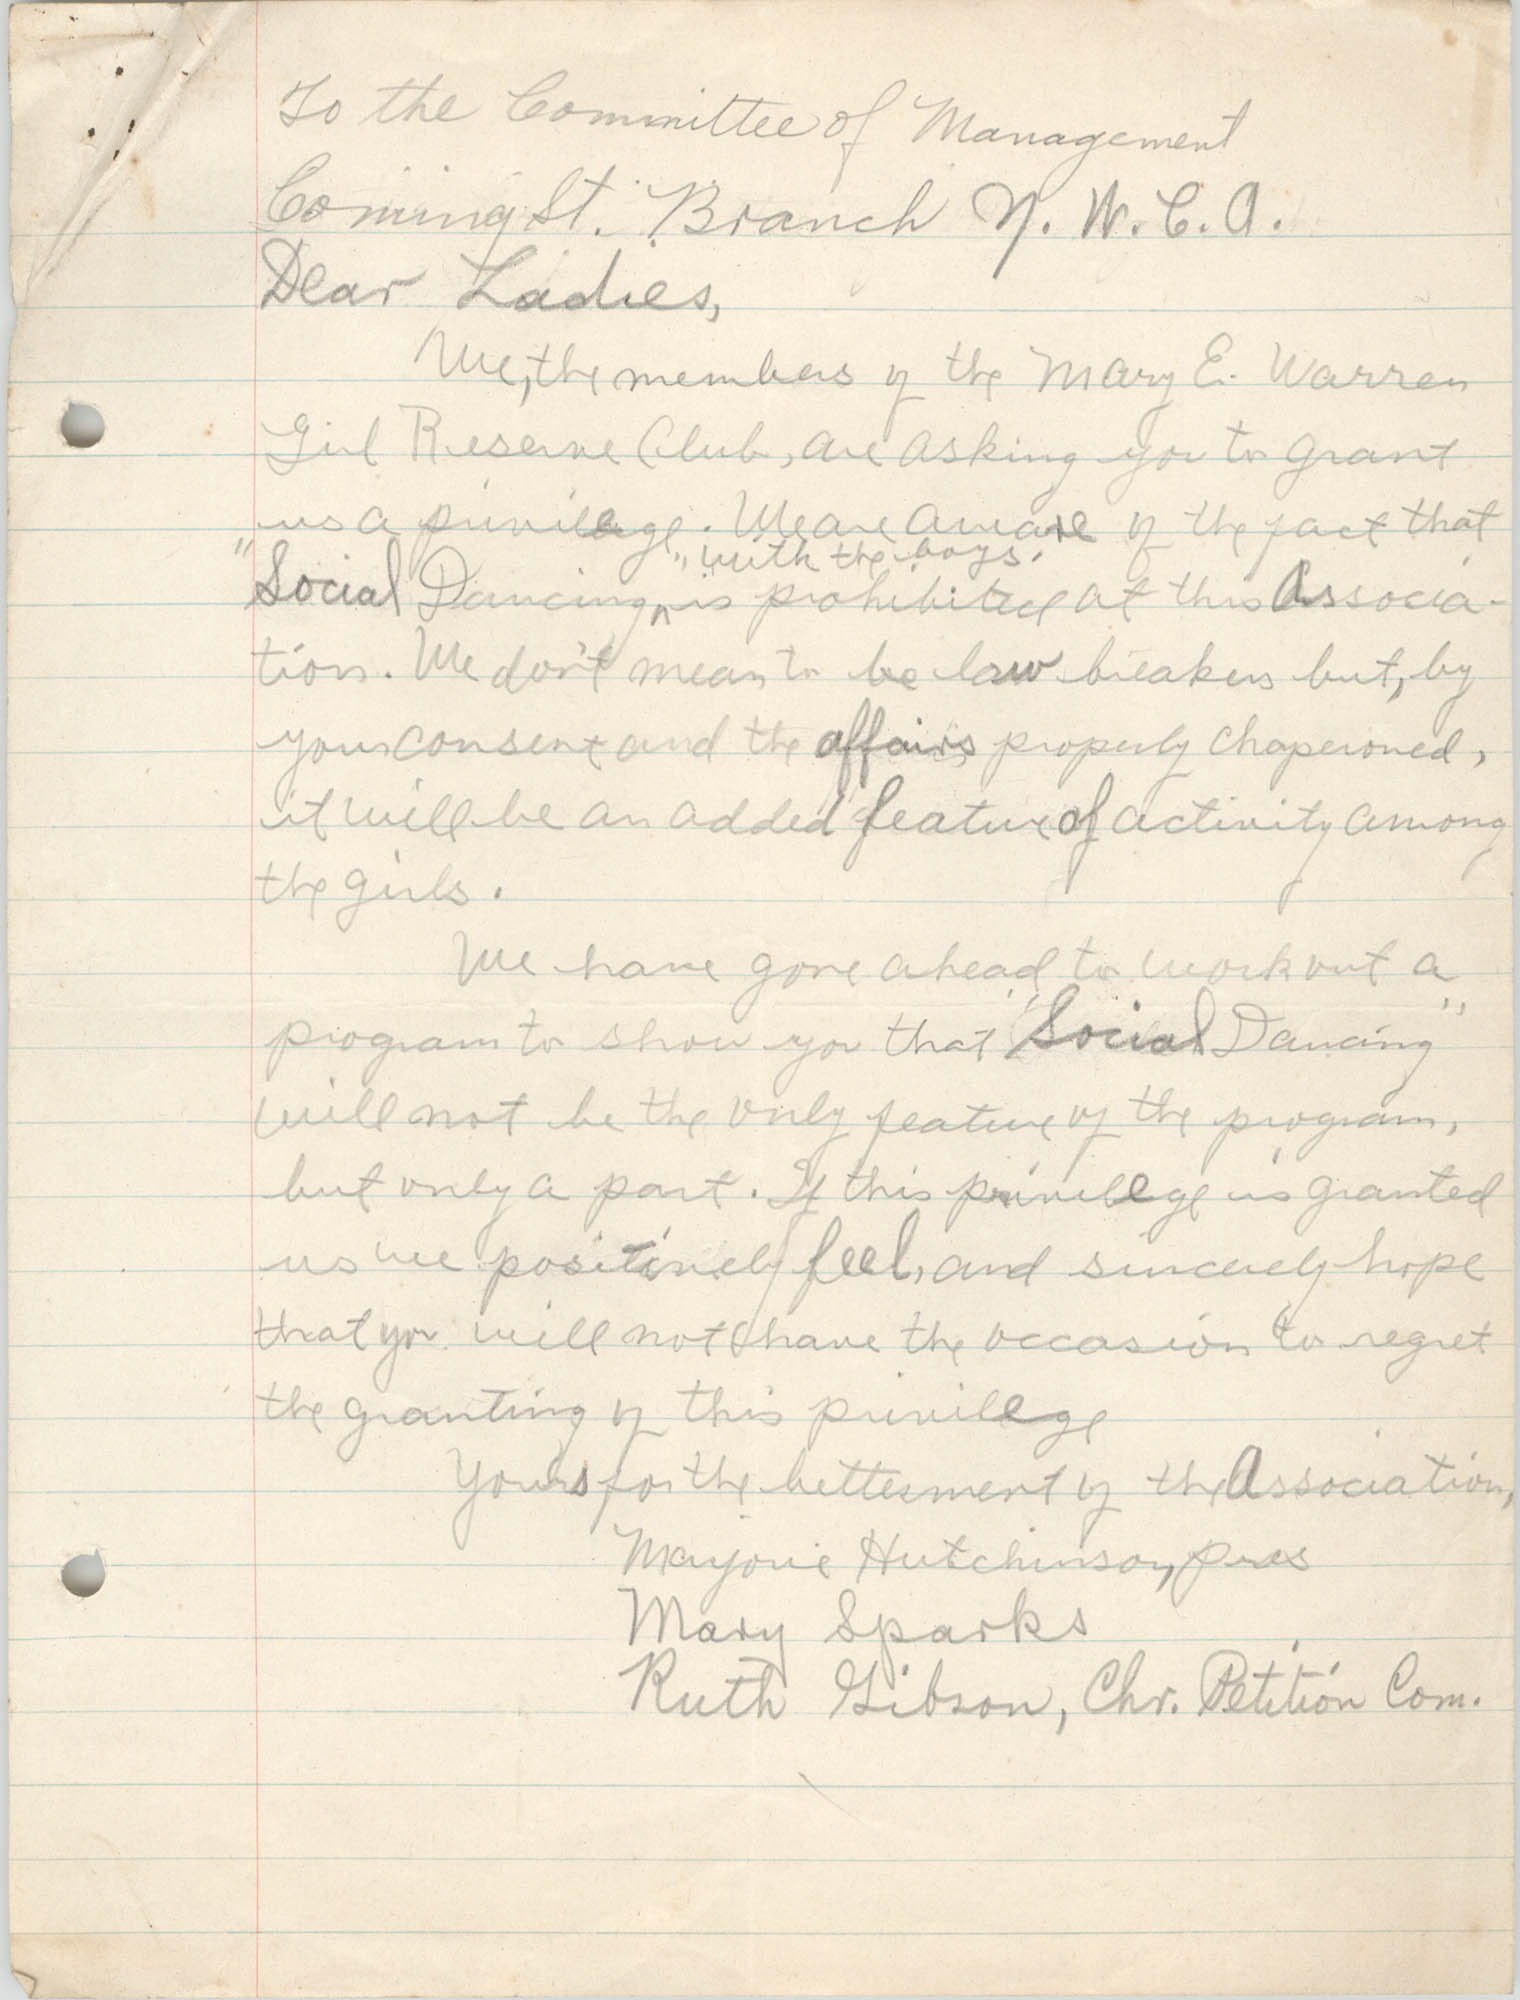 Letter from Mary Sparks and Ruth Gibson to the Committee of Management